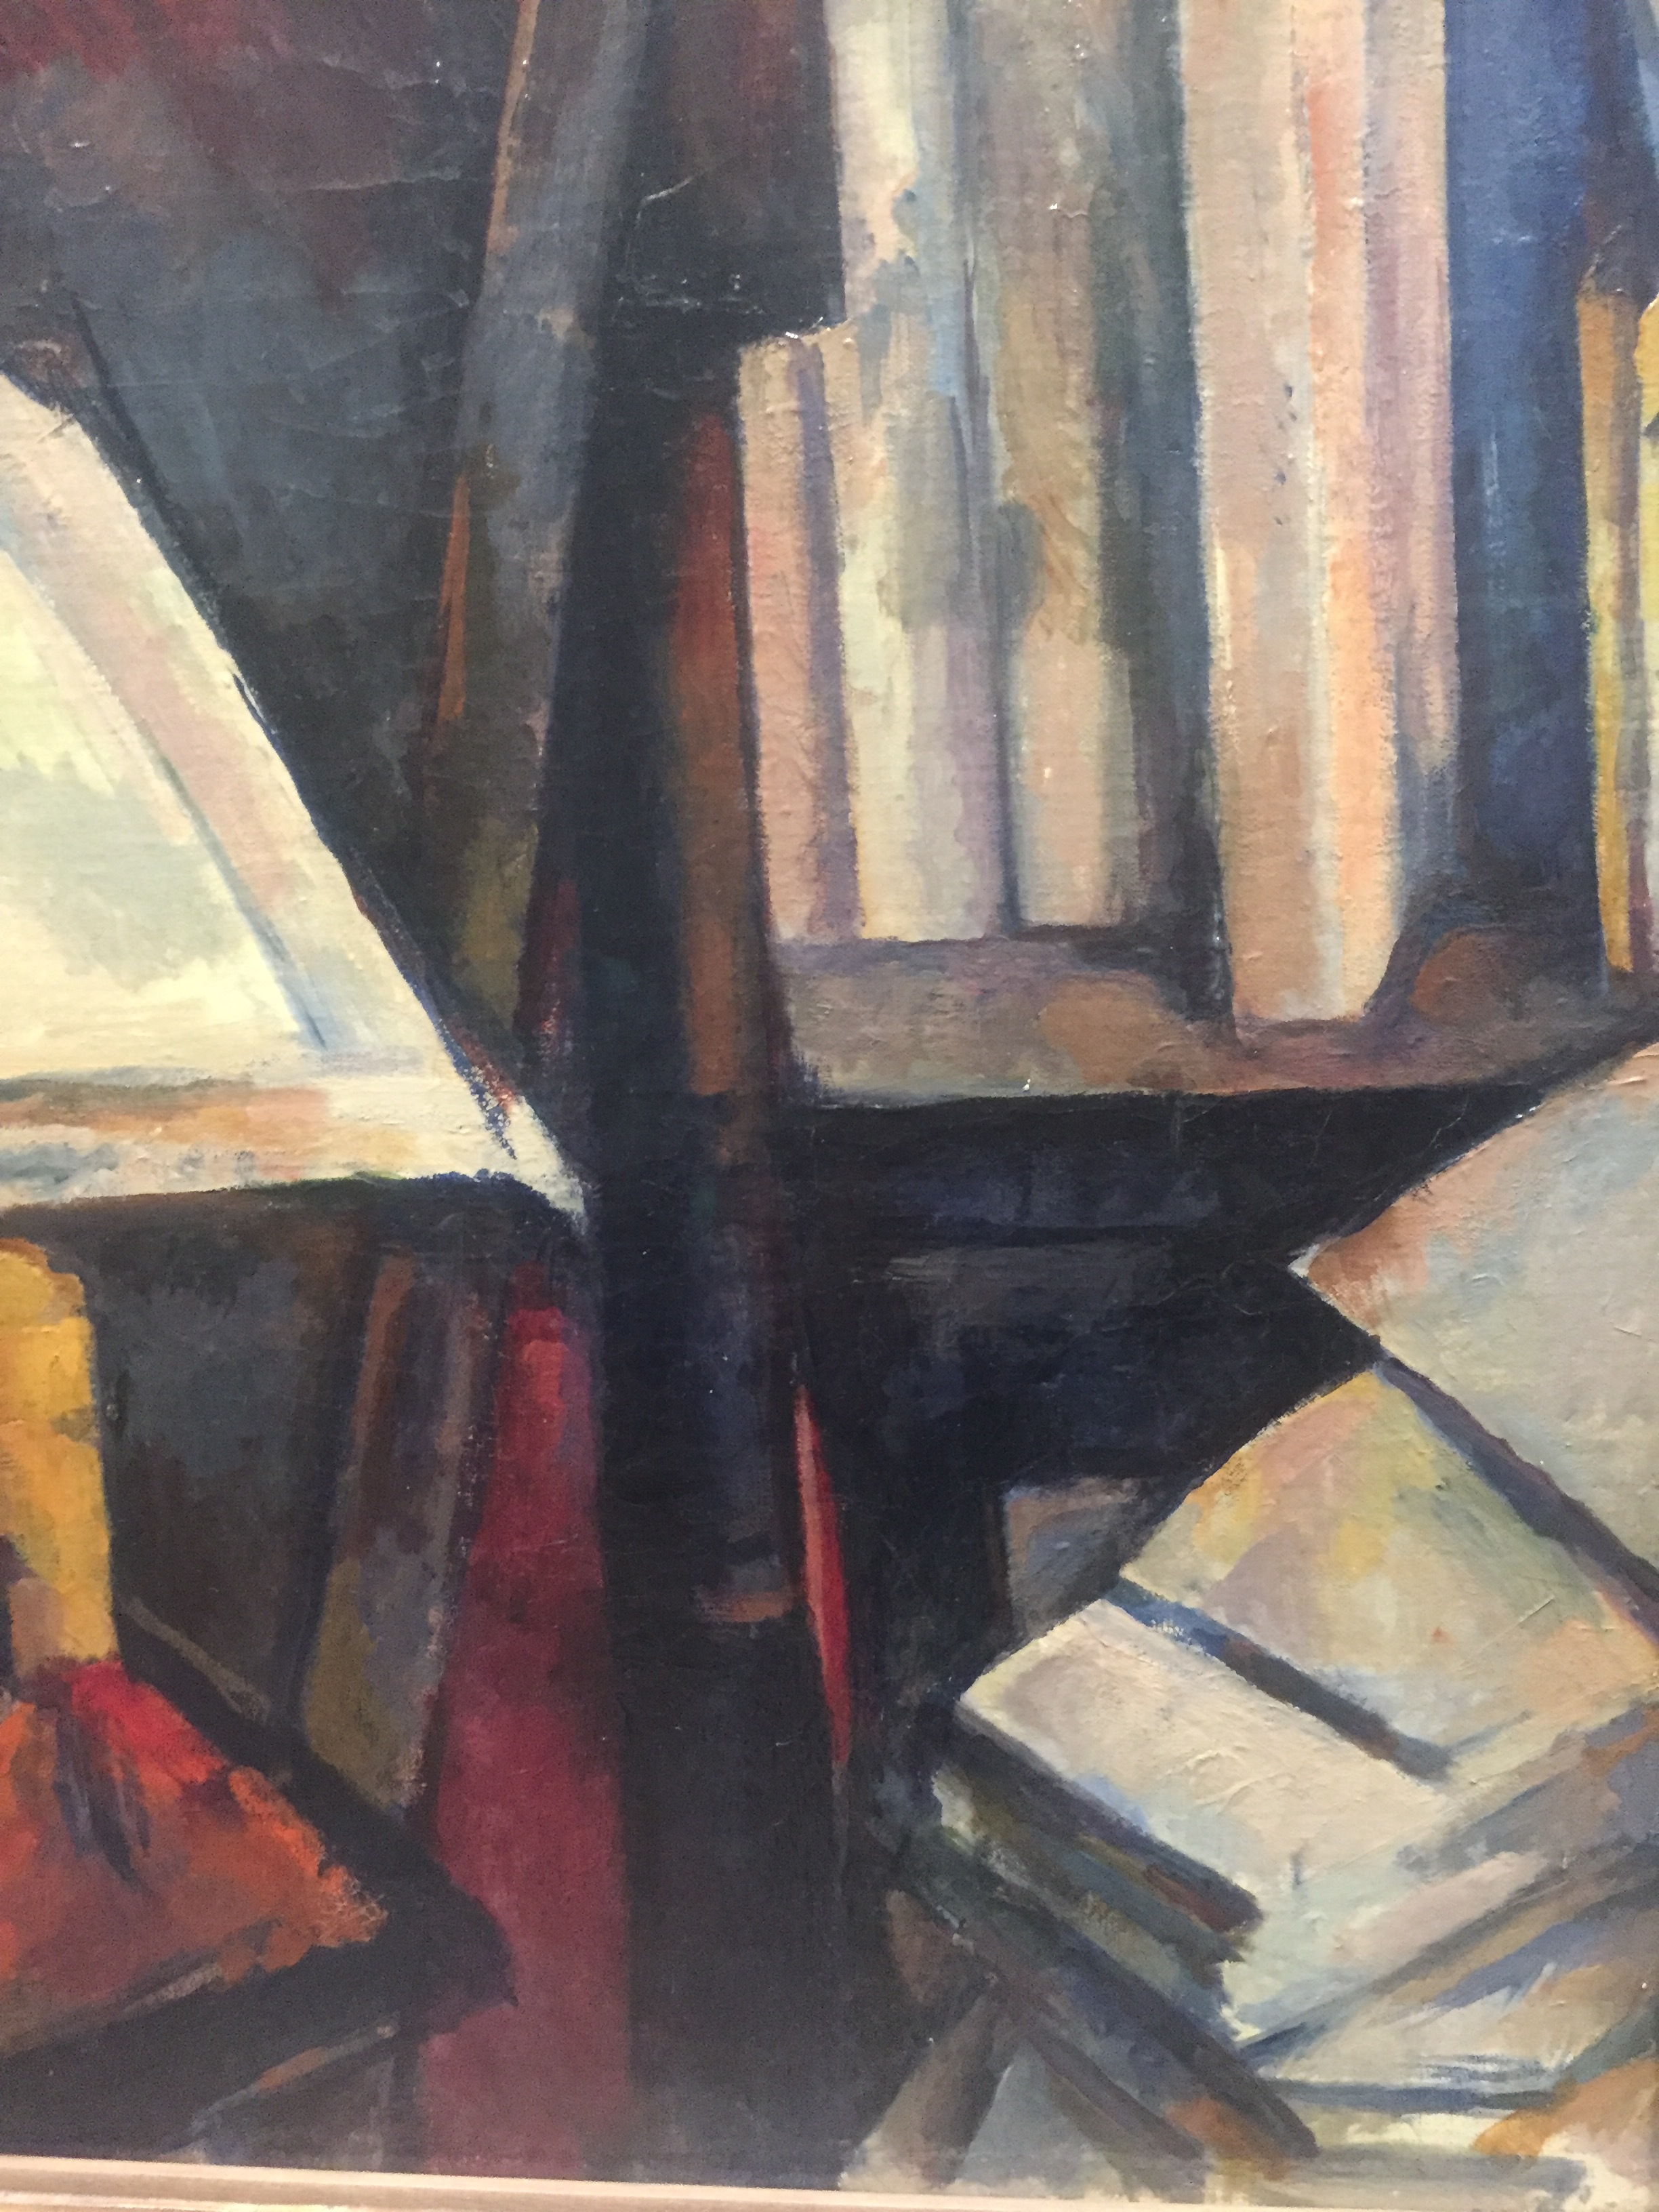 cezanne books and pages detail national gallery of art.JPG